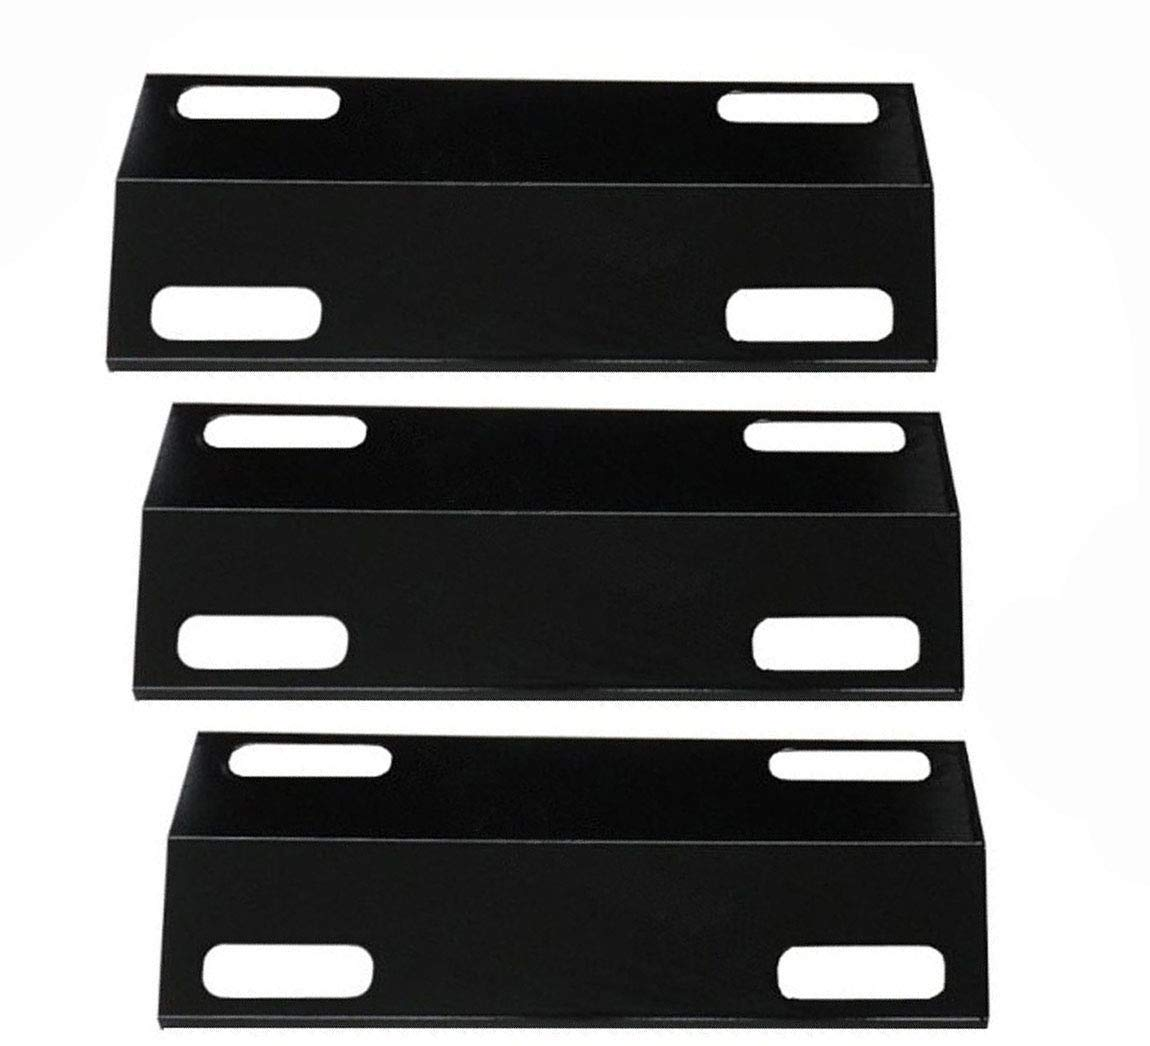 bbq factory Replacement Porcelain Steel BBQ Gas Grill Heat Plate / Heat Shield Part Ducane:30501013 (3-pack) Select Gas Grill Models By Ducane Gas Grill and Other